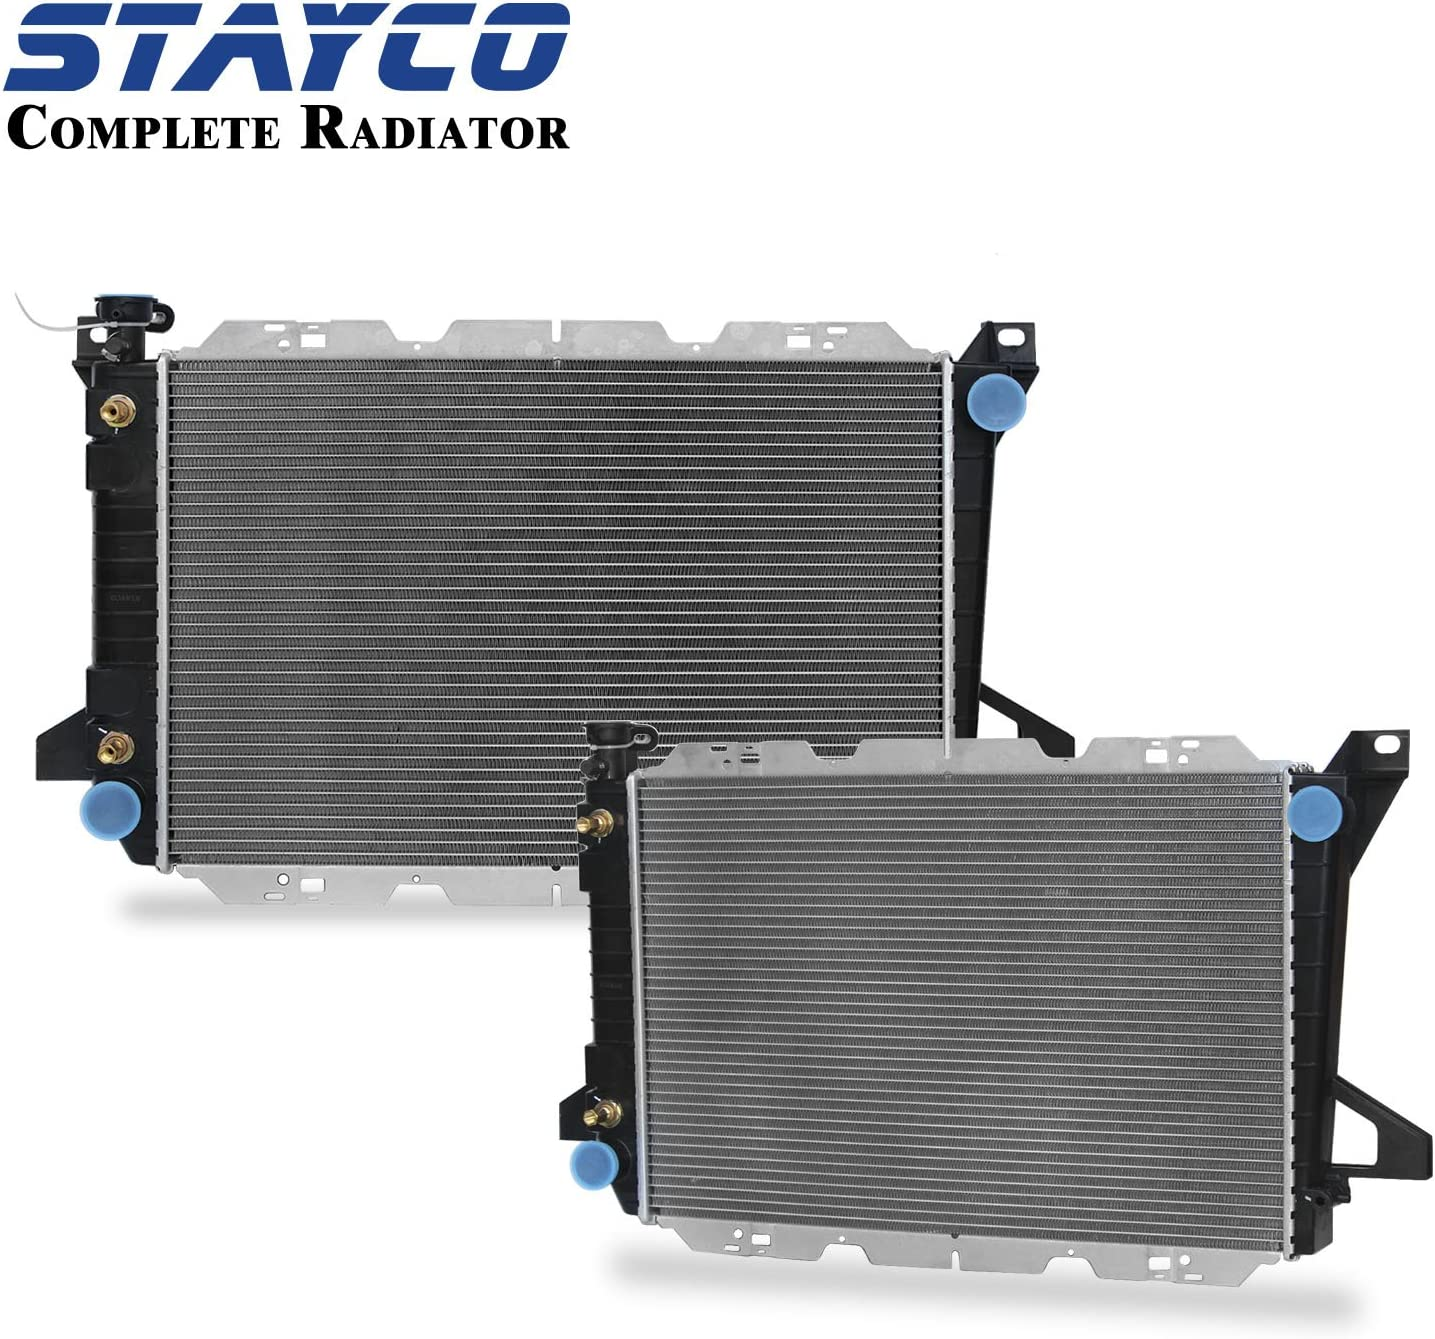 2-Rows CU1451 Radiator Replacement for Ford Bronco F-150 F-250 1985-1996 V8 5.0L 5.8L 7.5L